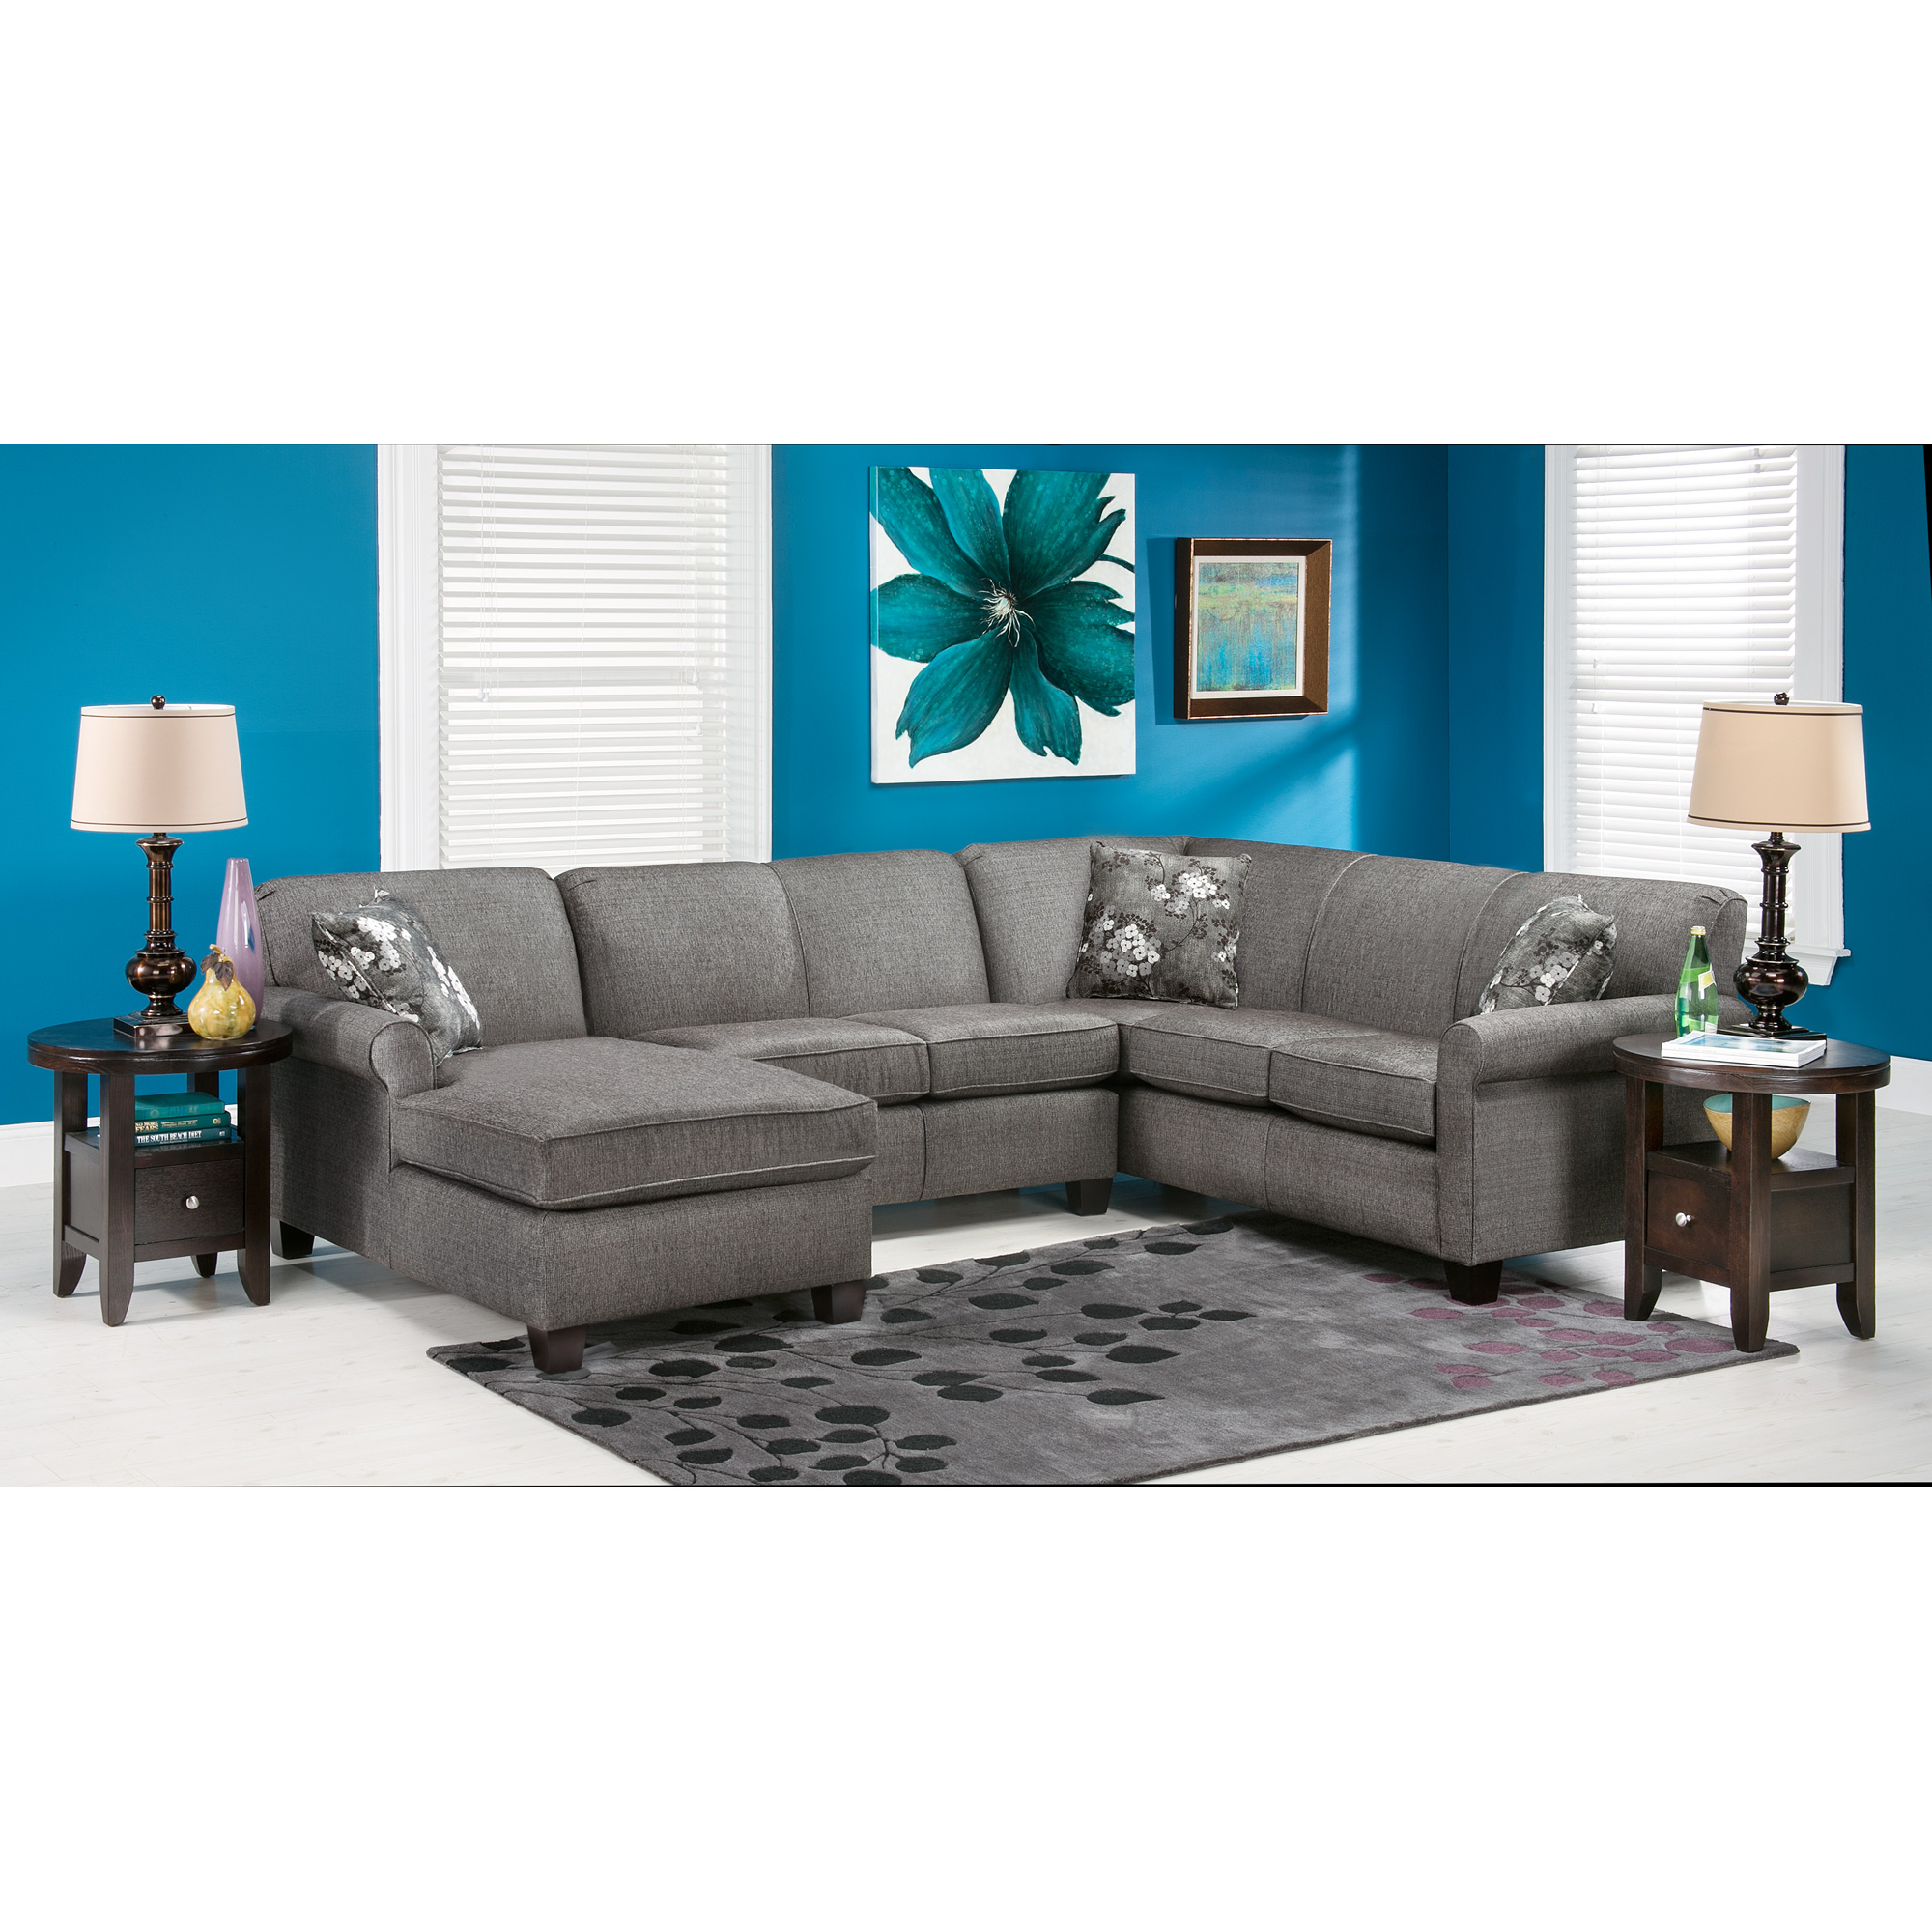 Dimensions By England | York Granite 3 Piece Sectional Sofa